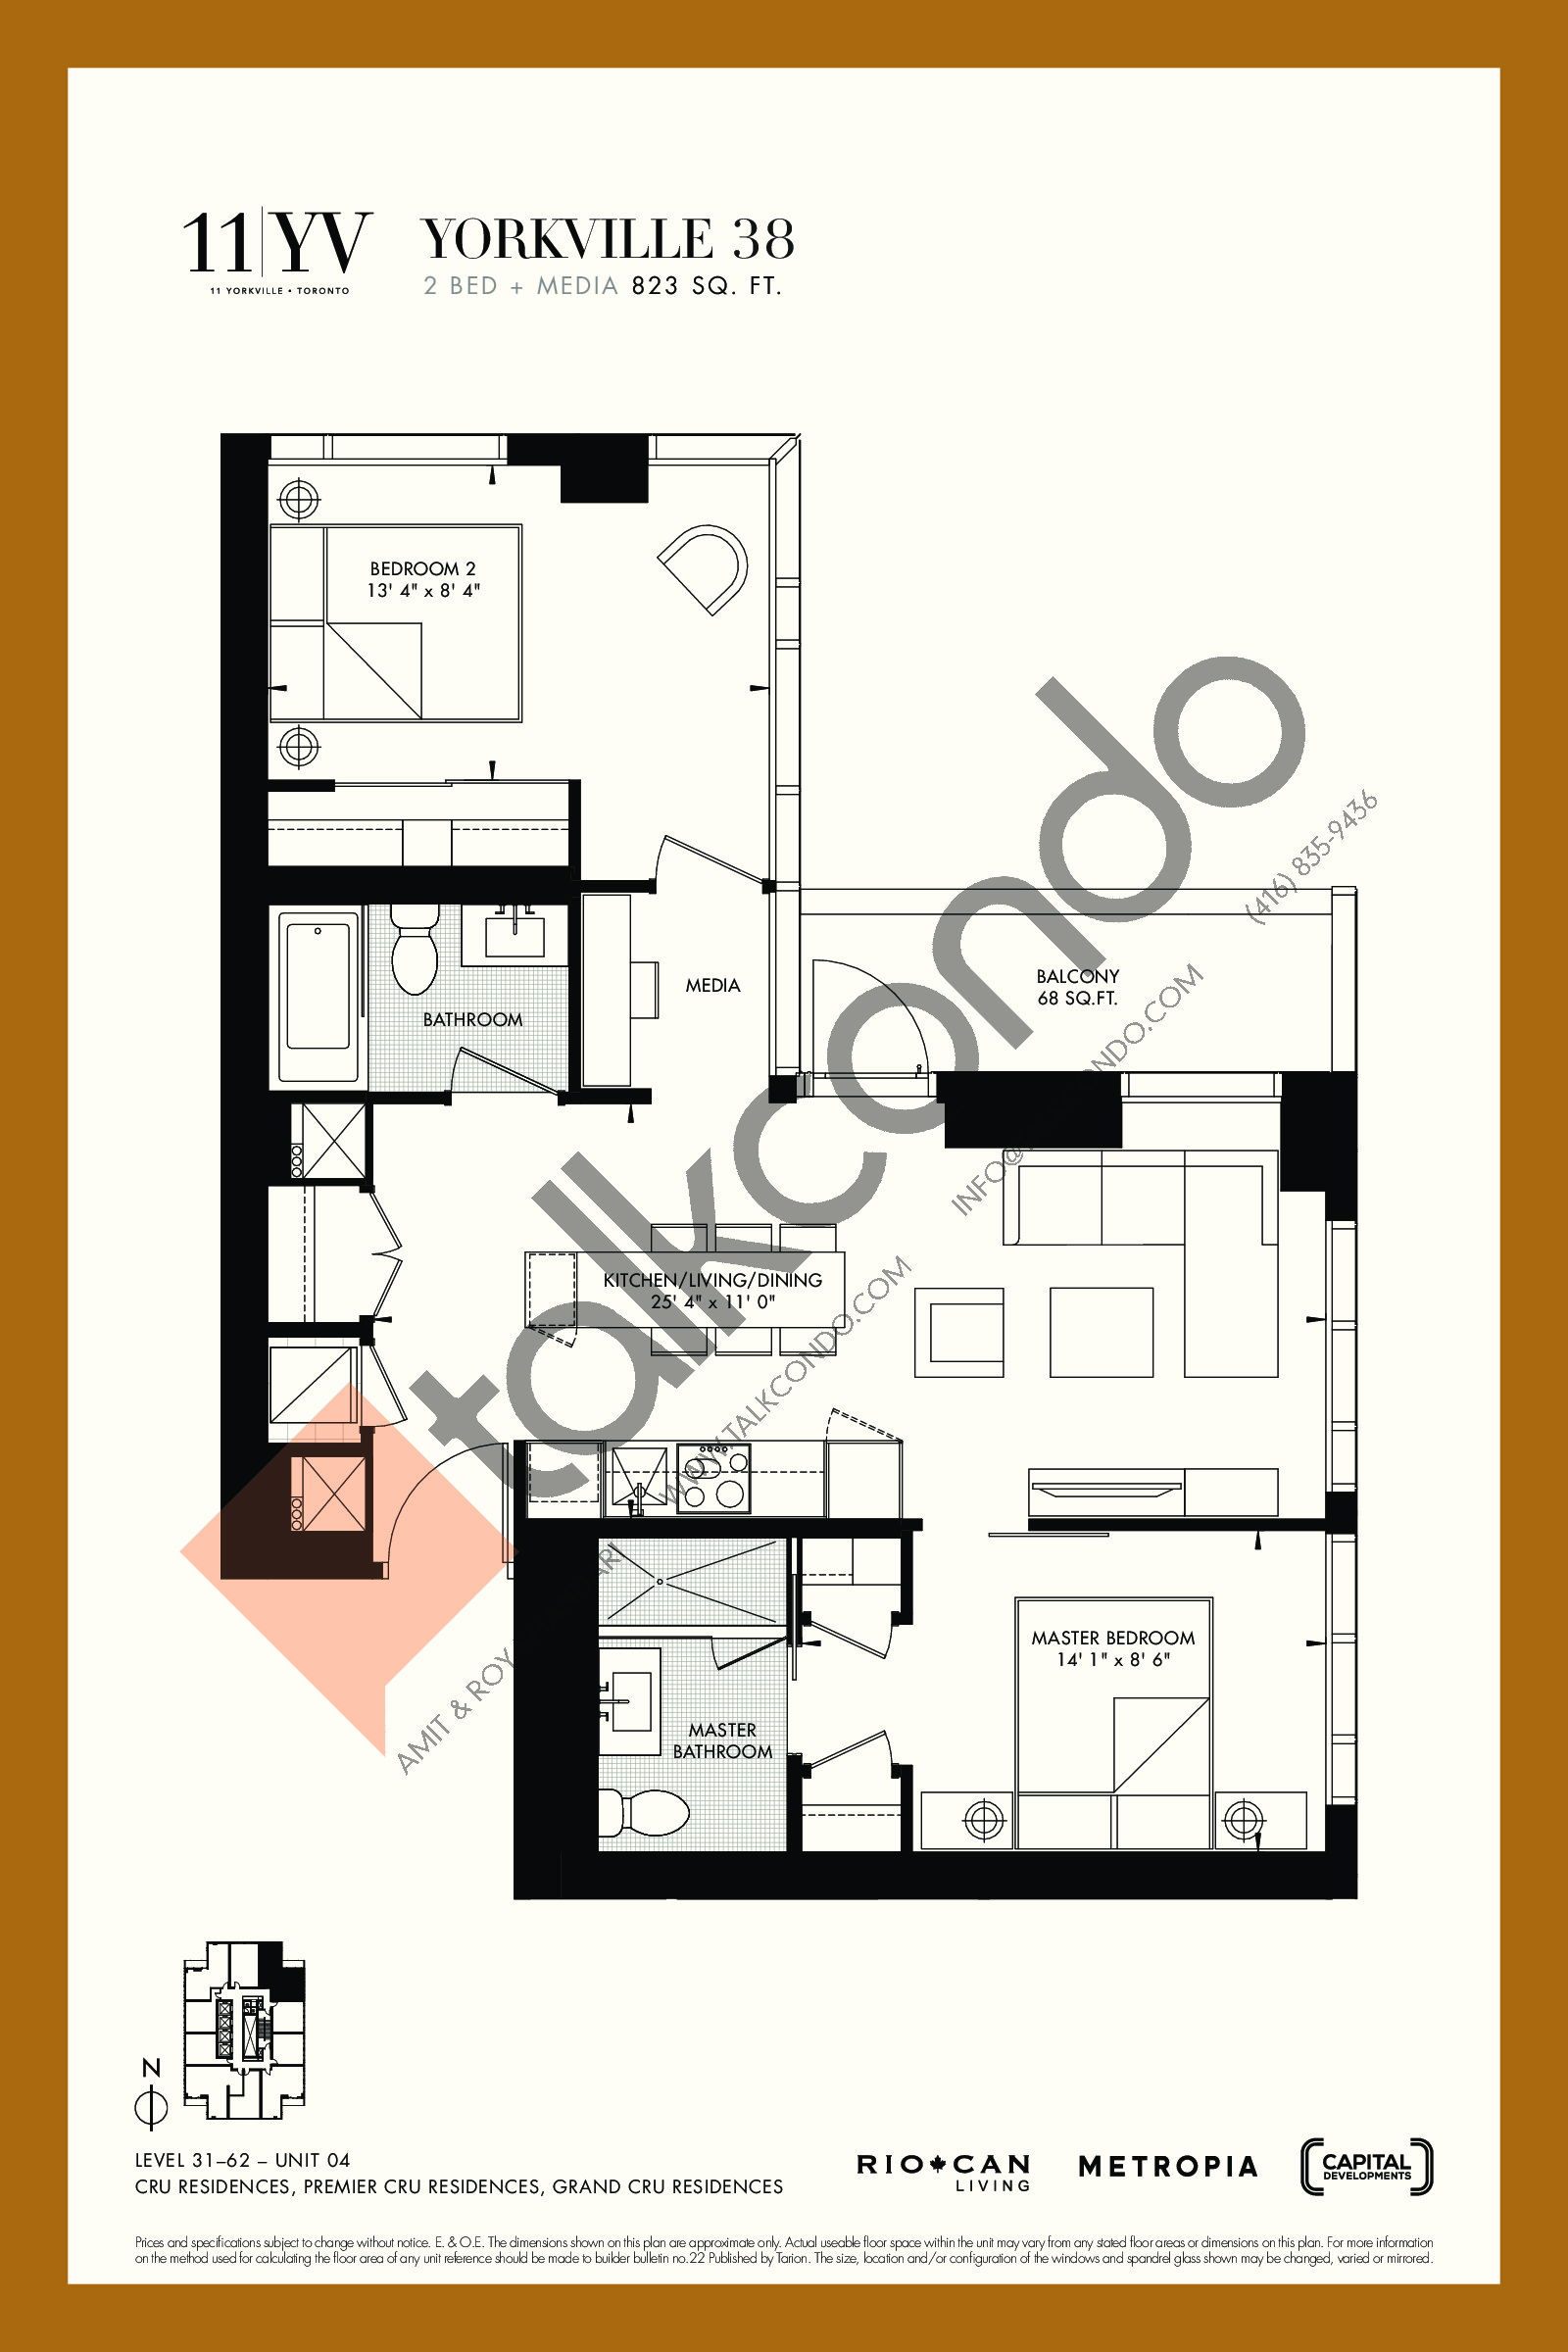 Yorkville 38 Floor Plan at 11YV Condos - 823 sq.ft